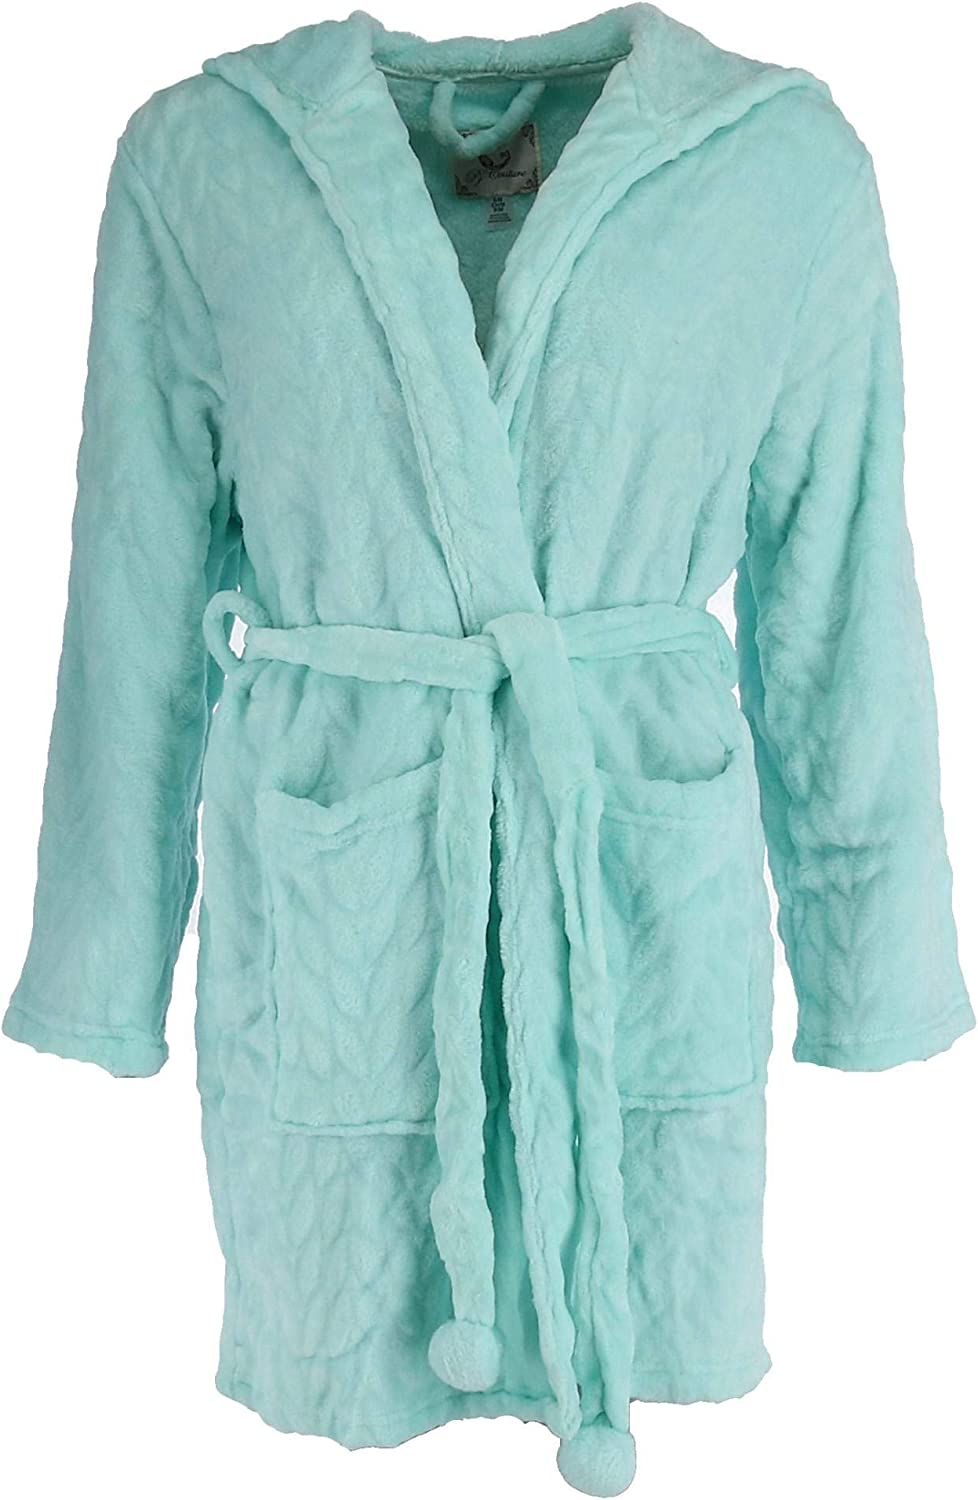 PJCouture Womens Plush Hooded Short Robe